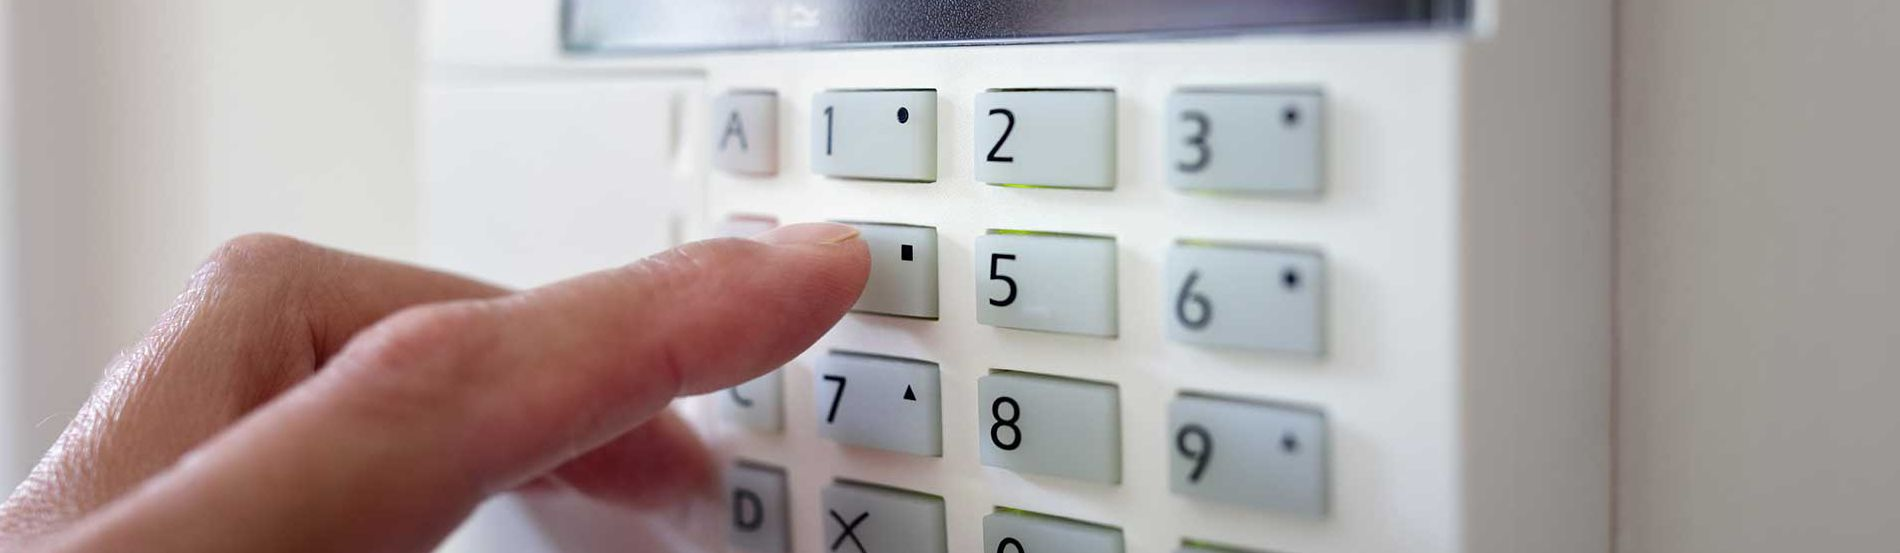 Burnley Alarm Keypad